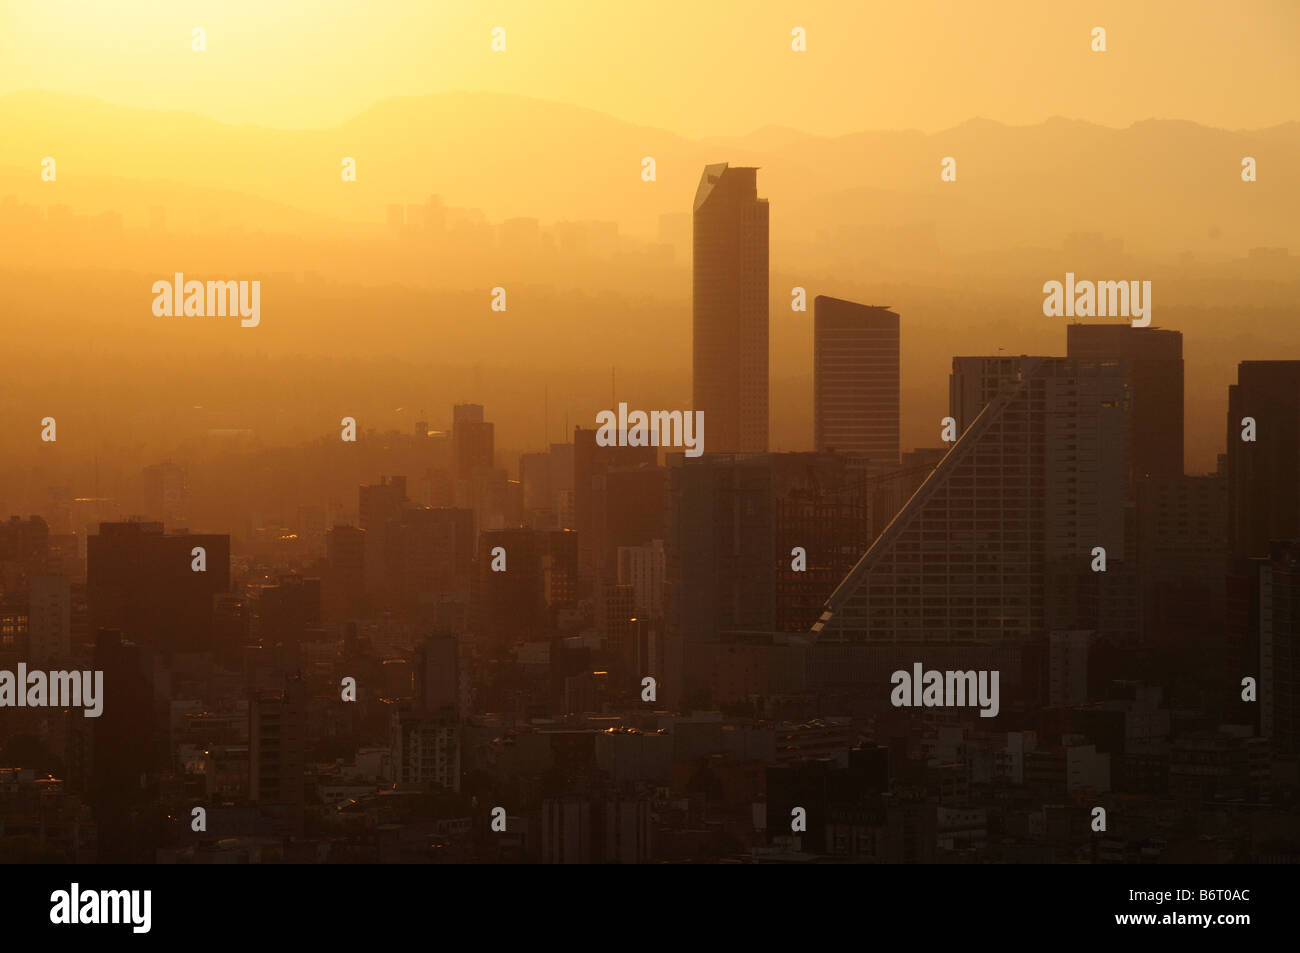 Smog at sunset, skyline of Mexico City - Stock Image